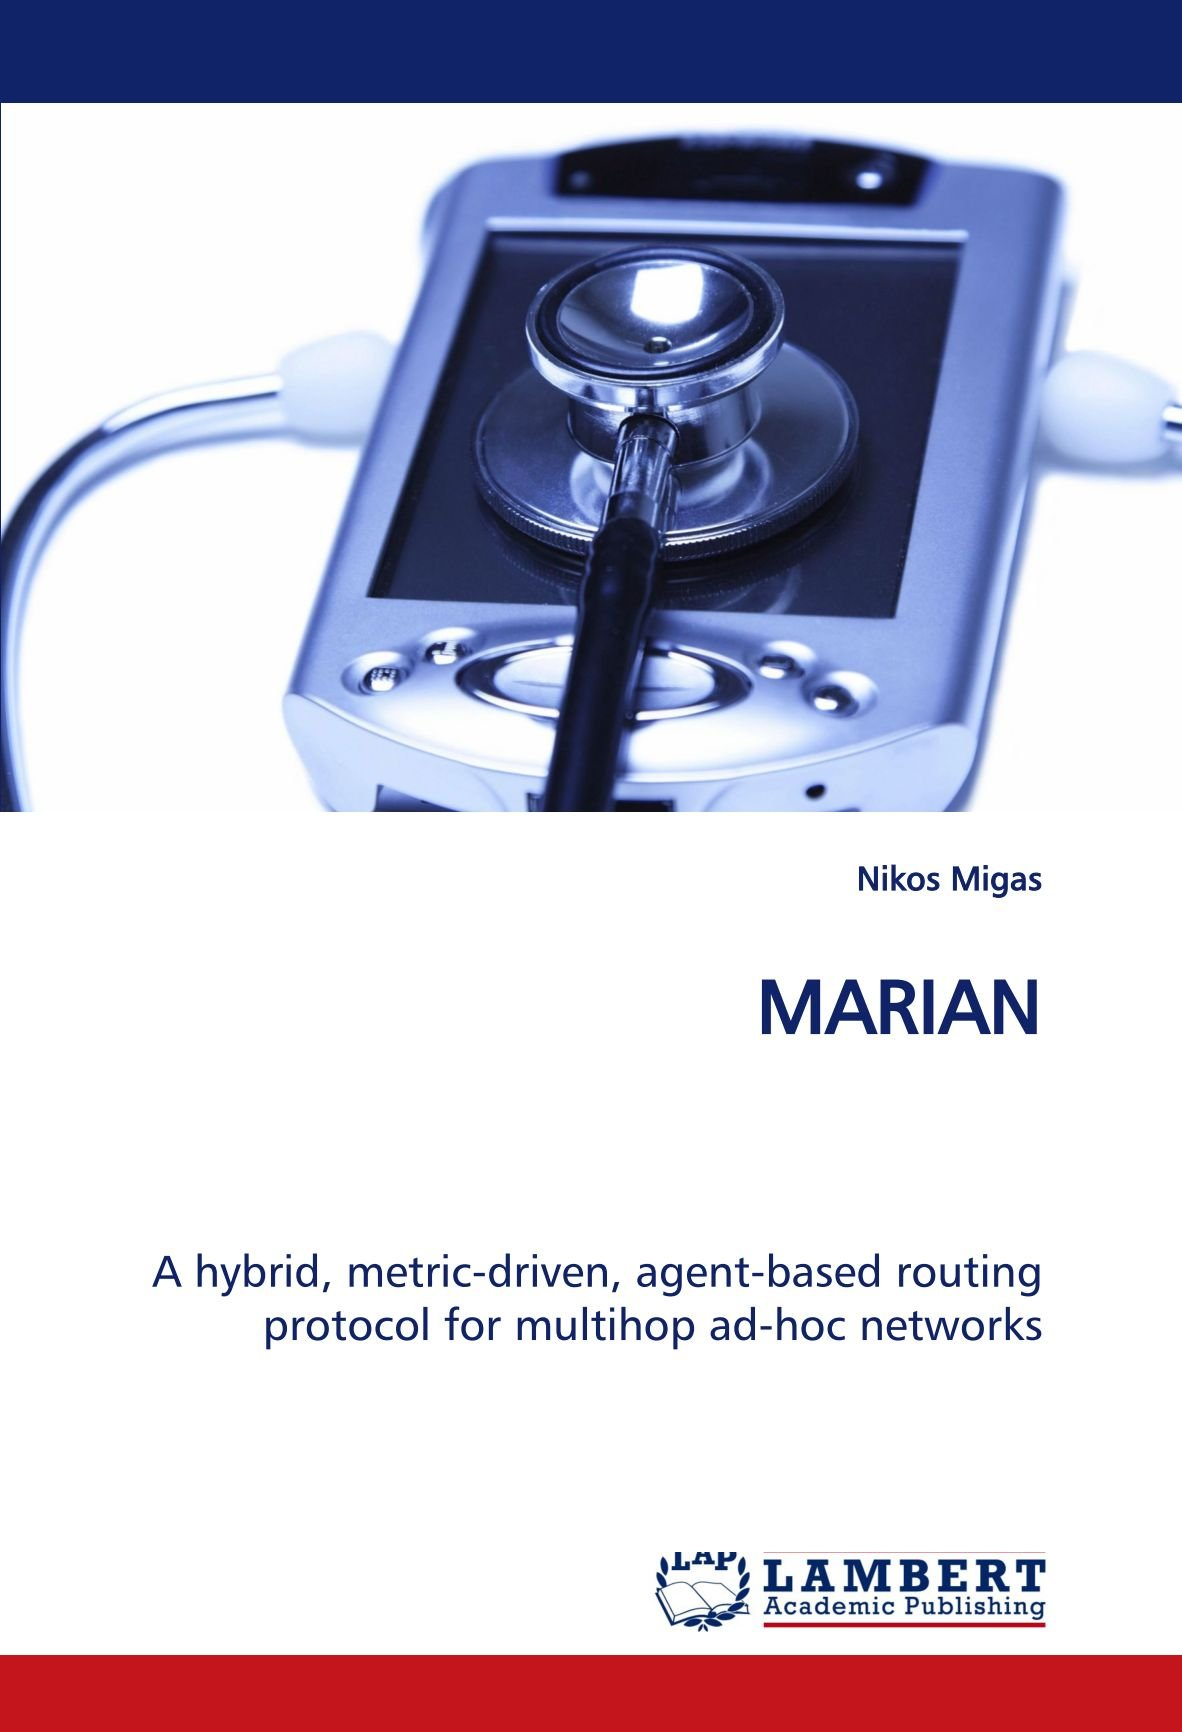 MARIAN A Hybrid Metric Driven Agent Based Routing Protocol For Multihop Ad Hoc Networks Amazonde Nikos Migas Fremdsprachige Bucher